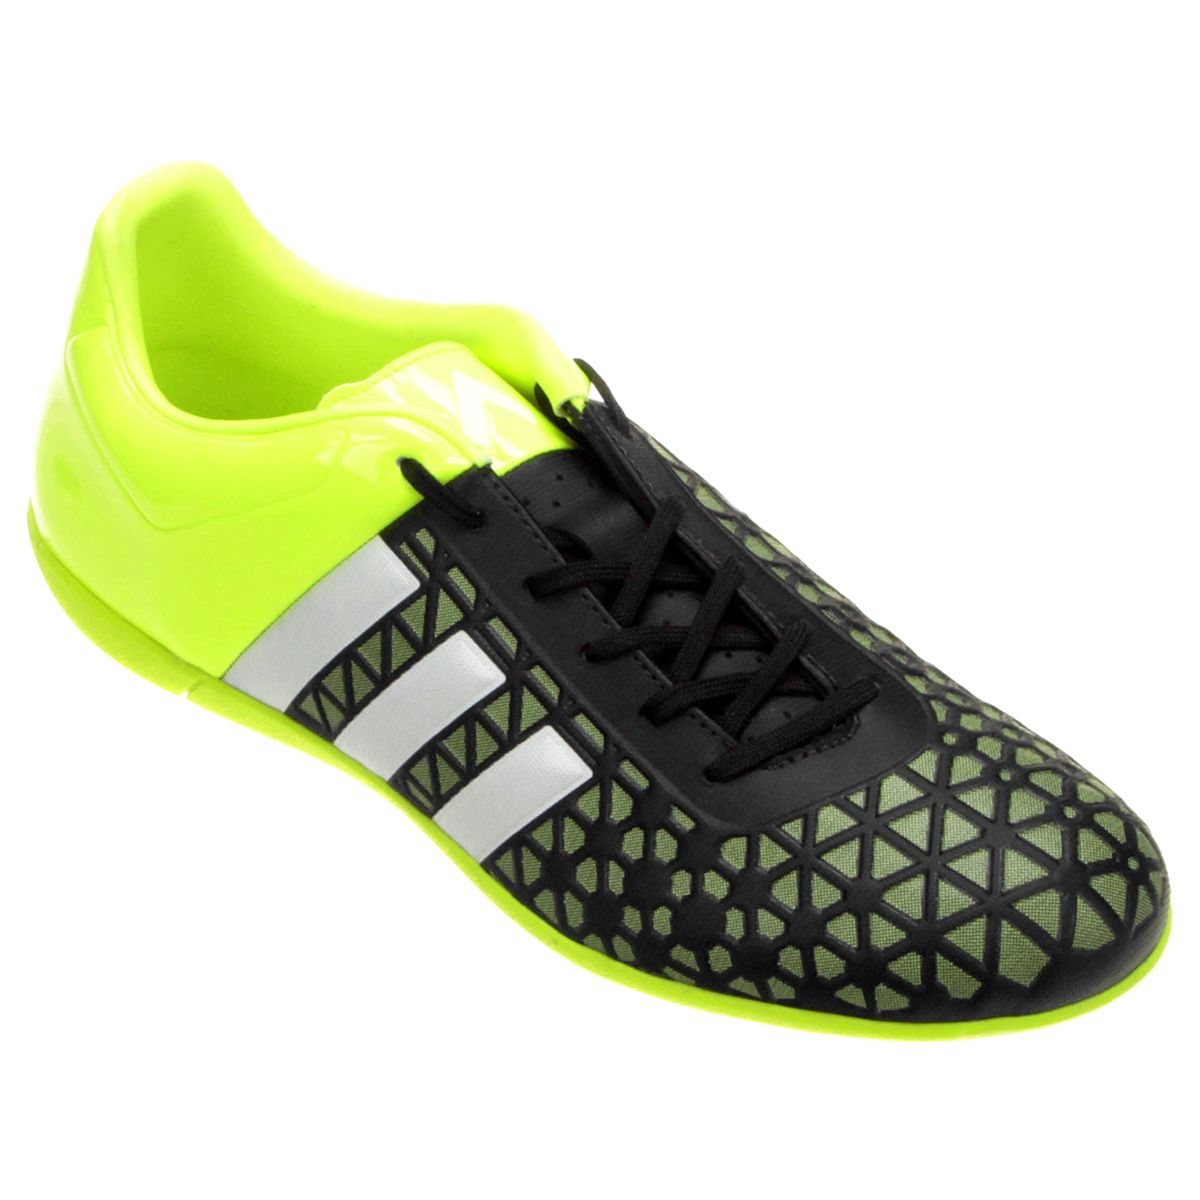 bb2cd40db8 Chuteira Adidas Ace 15 3 IN Futsal Verde e Preto